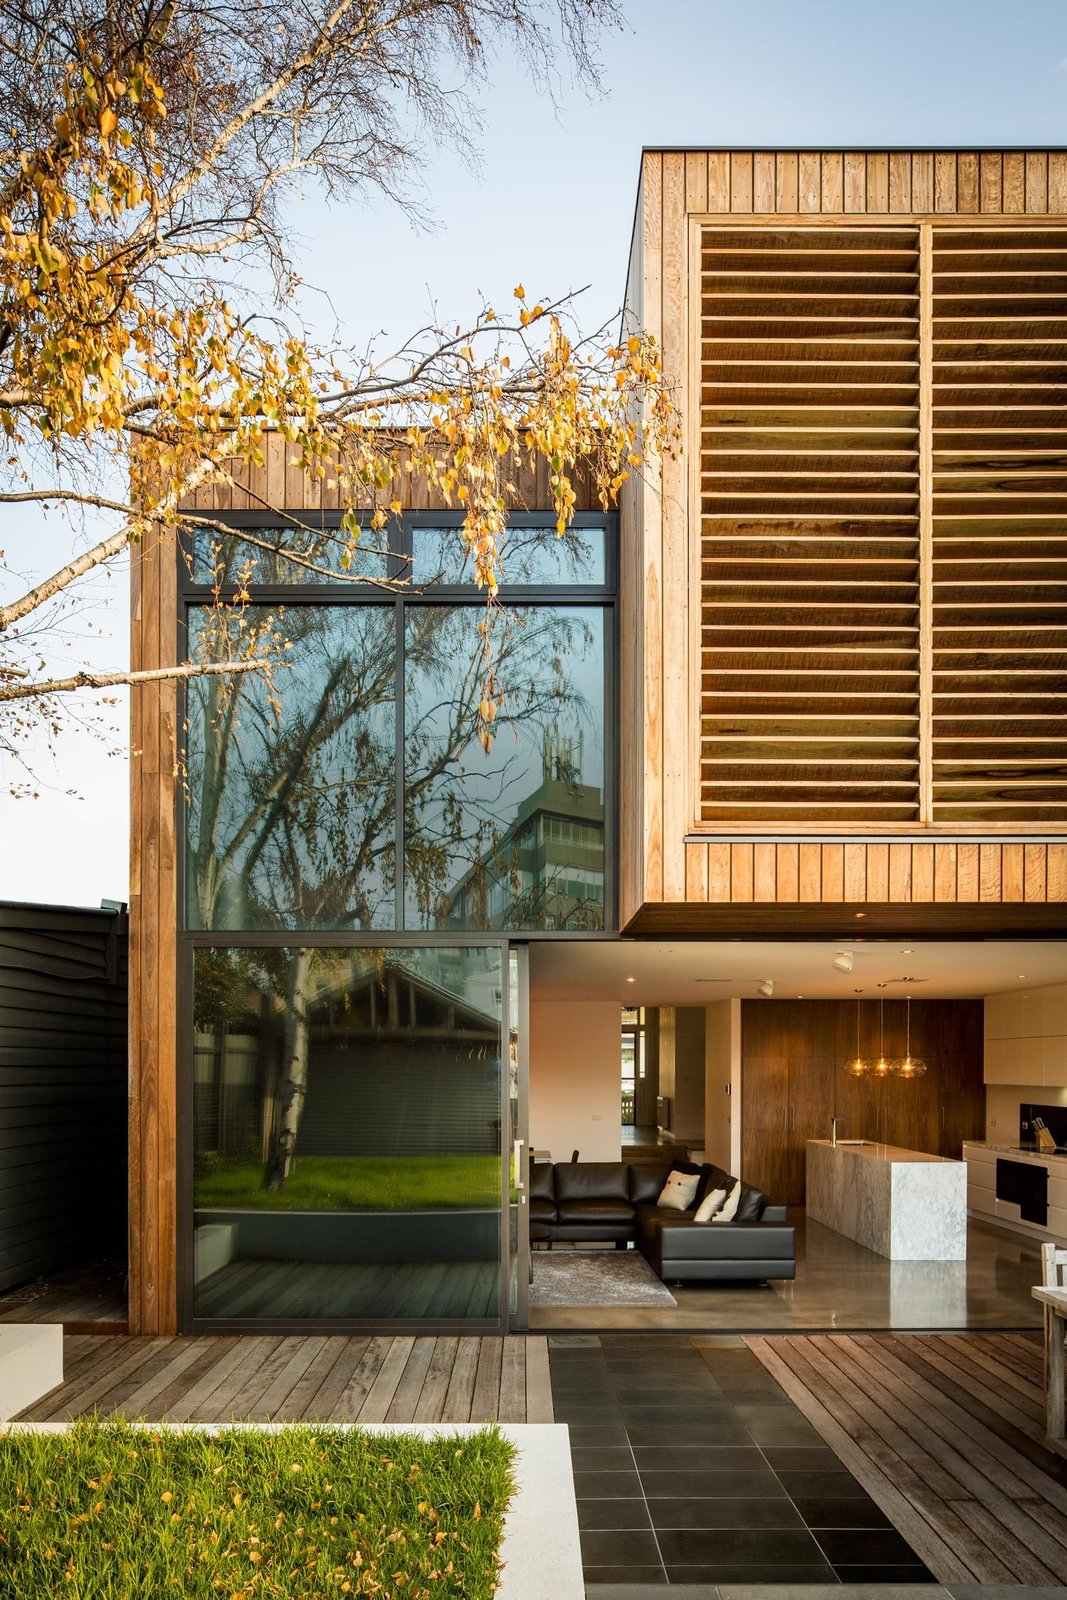 #modern #architecture #modernarchitecture #wood #glass #minimal #slidingdoor #patio #kitchen #livingroom  #indoor #outdoor #openair #Melbourne #Australia #MitsuoriArchitects  Tips for Creating a Comfortable Living Room by Drew McGukin from Modern Outside